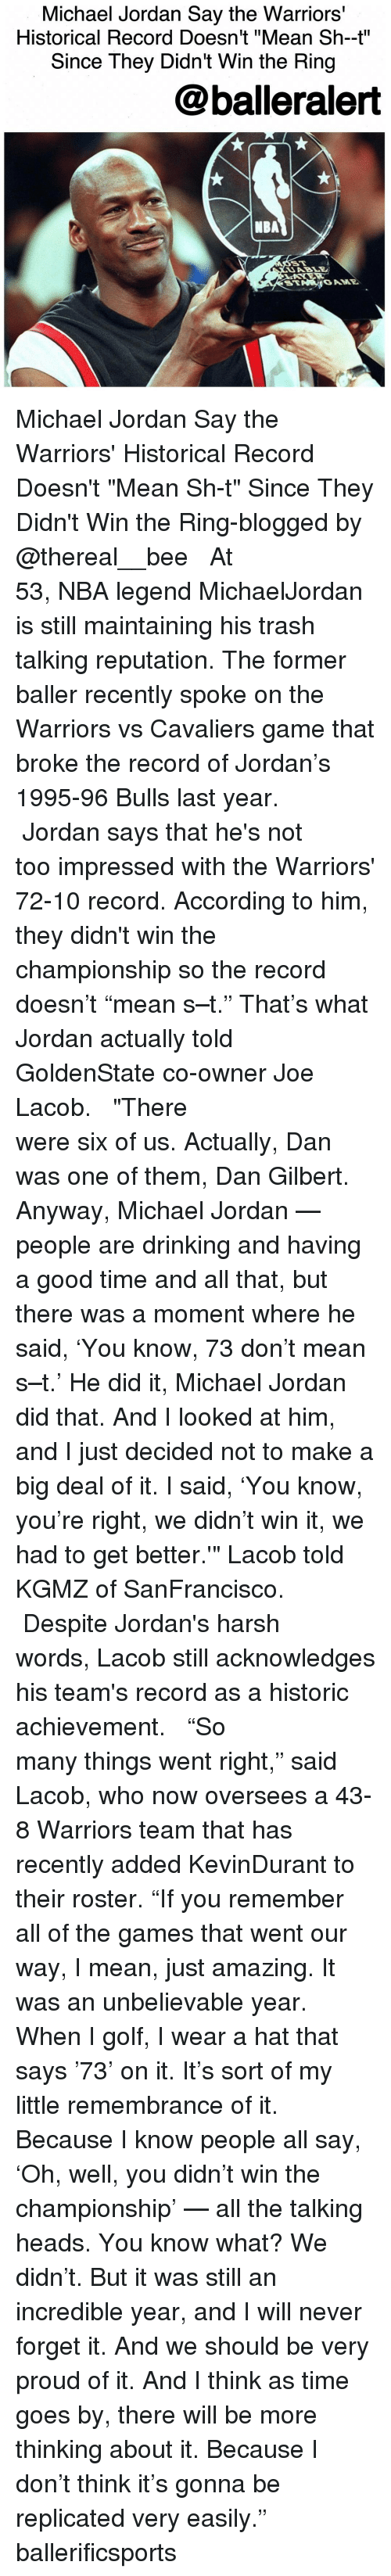 """dan gilbert: Michael Jordan Say the Warriors'  Historical Record Doesn't """"Mean Sh-t""""  Since They Didn't Win the Ring  balleralert  NBA Michael Jordan Say the Warriors' Historical Record Doesn't """"Mean Sh-t"""" Since They Didn't Win the Ring-blogged by @thereal__bee ⠀⠀⠀⠀⠀⠀⠀⠀⠀ ⠀⠀⠀⠀⠀⠀⠀⠀⠀ At 53, NBA legend MichaelJordan is still maintaining his trash talking reputation. The former baller recently spoke on the Warriors vs Cavaliers game that broke the record of Jordan's 1995-96 Bulls last year. ⠀⠀⠀⠀⠀⠀⠀⠀⠀ ⠀⠀⠀⠀⠀⠀⠀⠀⠀ Jordan says that he's not too impressed with the Warriors' 72-10 record. According to him, they didn't win the championship so the record doesn't """"mean s–t."""" That's what Jordan actually told GoldenState co-owner Joe Lacob. ⠀⠀⠀⠀⠀⠀⠀⠀⠀ ⠀⠀⠀⠀⠀⠀⠀⠀⠀ """"There were six of us. Actually, Dan was one of them, Dan Gilbert. Anyway, Michael Jordan — people are drinking and having a good time and all that, but there was a moment where he said, 'You know, 73 don't mean s–t.' He did it, Michael Jordan did that. And I looked at him, and I just decided not to make a big deal of it. I said, 'You know, you're right, we didn't win it, we had to get better.'"""" Lacob told KGMZ of SanFrancisco. ⠀⠀⠀⠀⠀⠀⠀⠀⠀ ⠀⠀⠀⠀⠀⠀⠀⠀⠀ Despite Jordan's harsh words, Lacob still acknowledges his team's record as a historic achievement. ⠀⠀⠀⠀⠀⠀⠀⠀⠀ ⠀⠀⠀⠀⠀⠀⠀⠀⠀ """"So many things went right,"""" said Lacob, who now oversees a 43-8 Warriors team that has recently added KevinDurant to their roster. """"If you remember all of the games that went our way, I mean, just amazing. It was an unbelievable year. When I golf, I wear a hat that says '73' on it. It's sort of my little remembrance of it. Because I know people all say, 'Oh, well, you didn't win the championship' — all the talking heads. You know what? We didn't. But it was still an incredible year, and I will never forget it. And we should be very proud of it. And I think as time goes by, there will be more thinking about it. Because I don't think it's gonna be replicated very eas"""